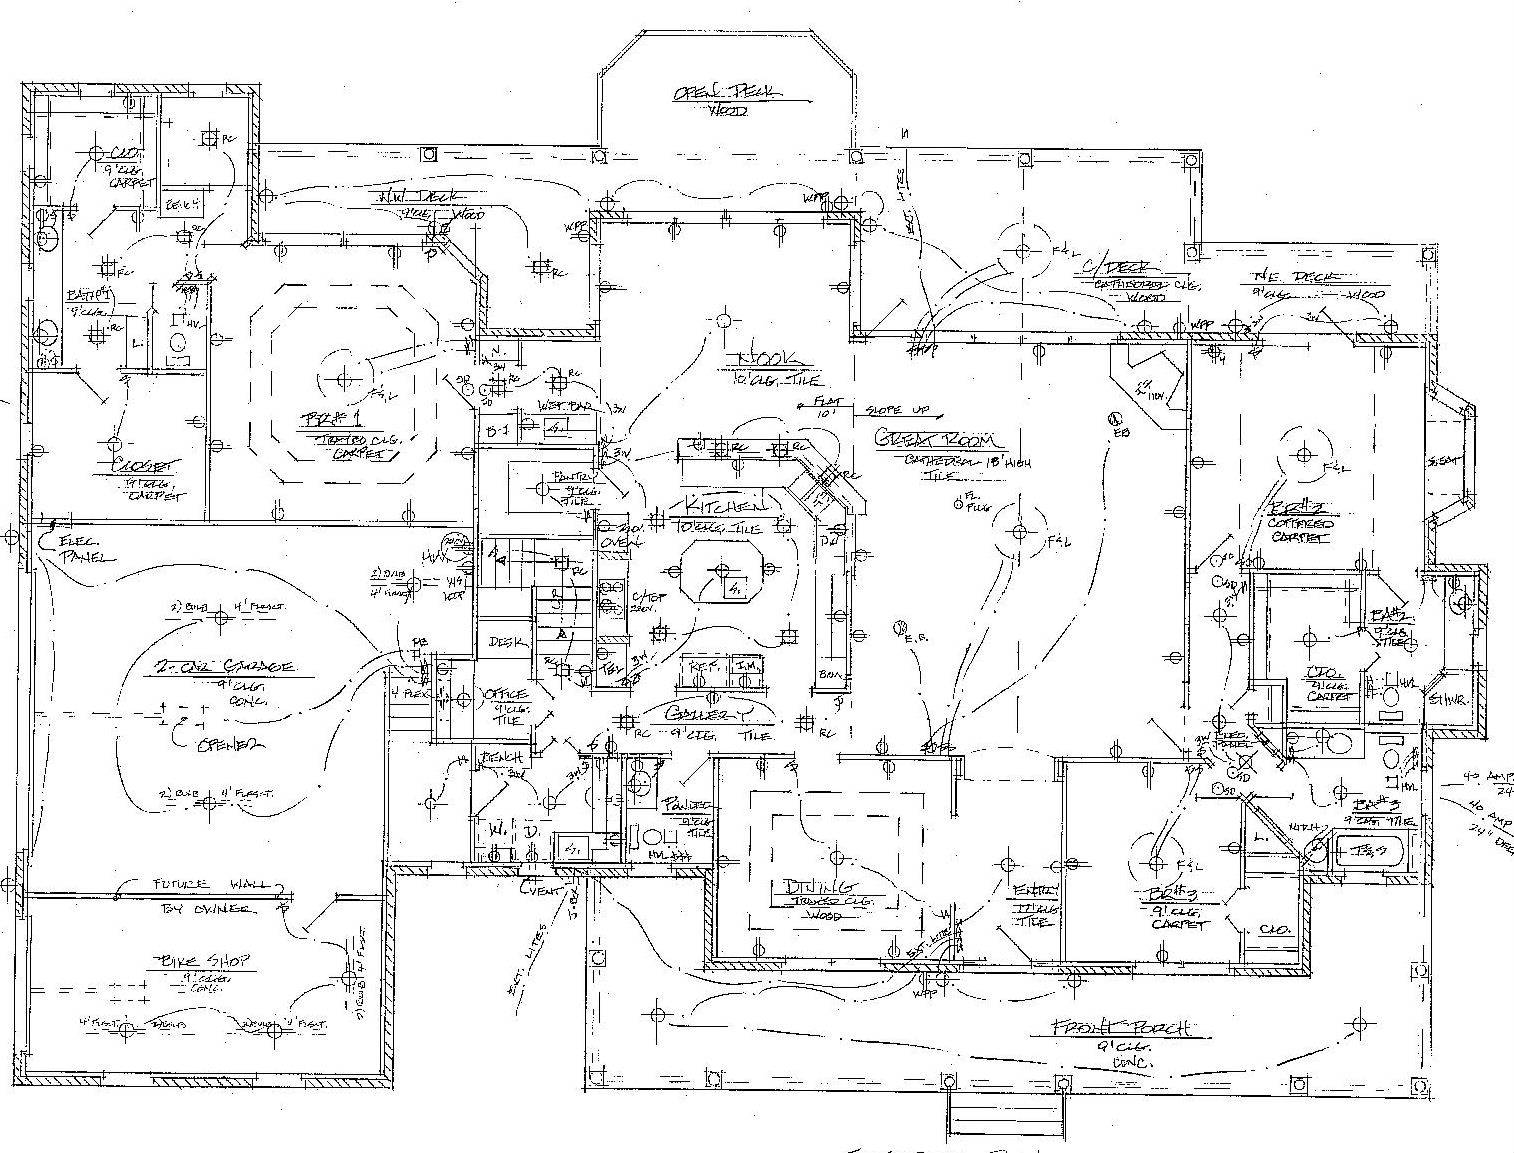 electrical drawing house the wiring diagram electrical drawing plan vidim wiring diagram electrical drawing